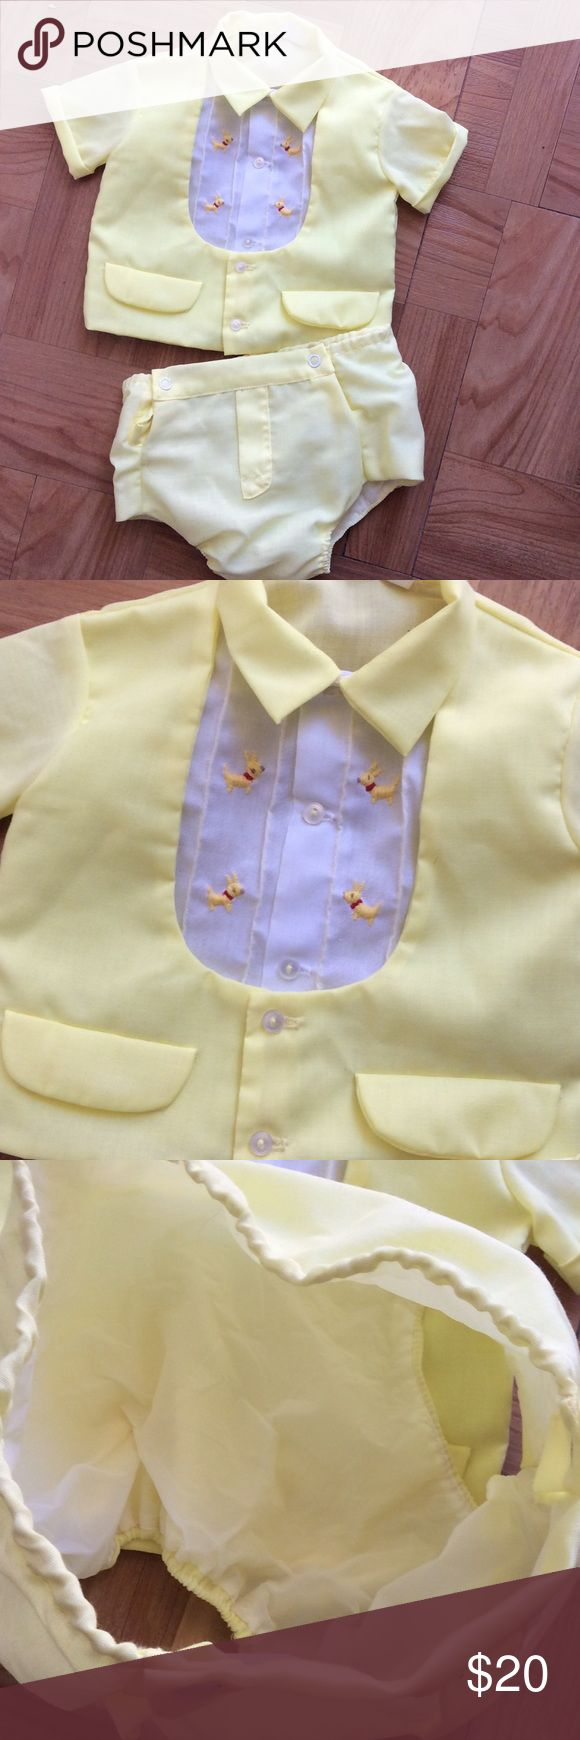 Vintage Baby Boy Yellow Suit Set Plastic Pant 0-6M So cute! Yellow set made for a baby boy. Pants have plastic lining. Size 0-6 Months. No rips or stains unknown Matching Sets